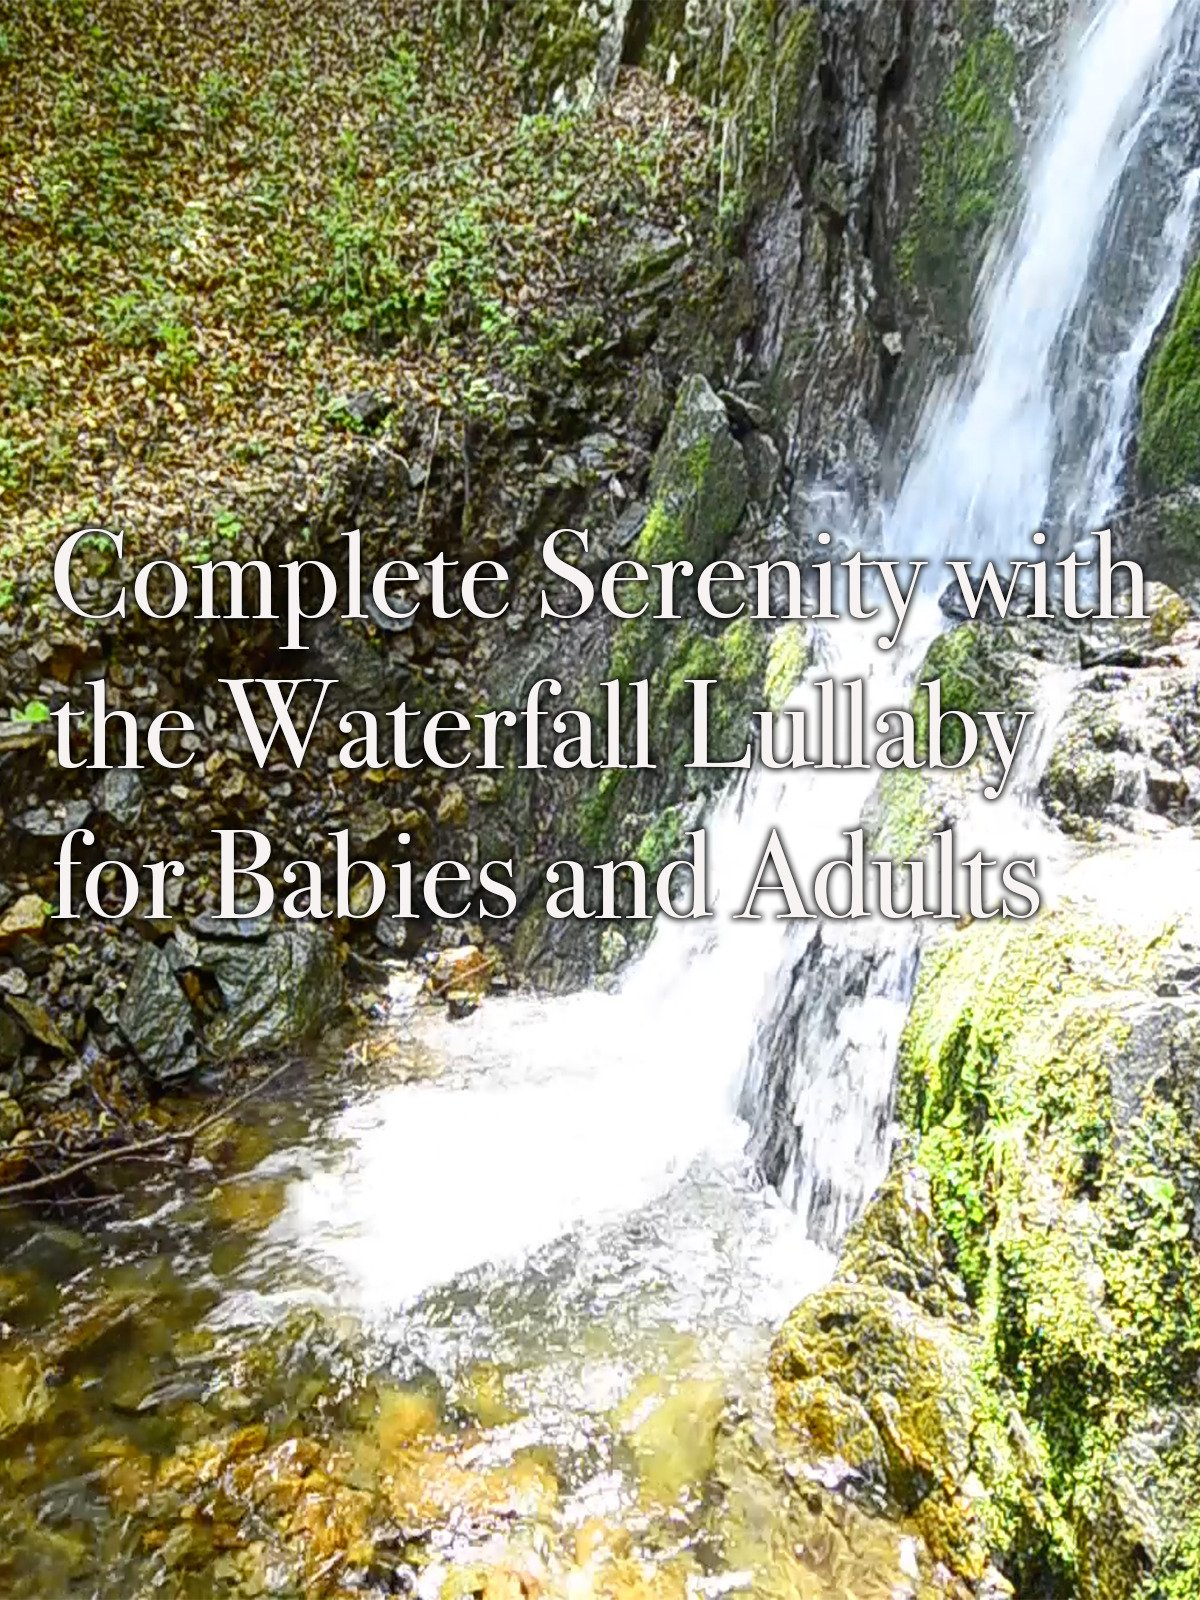 Complete Serenity with the Waterfall Lullaby for Babies and Adults